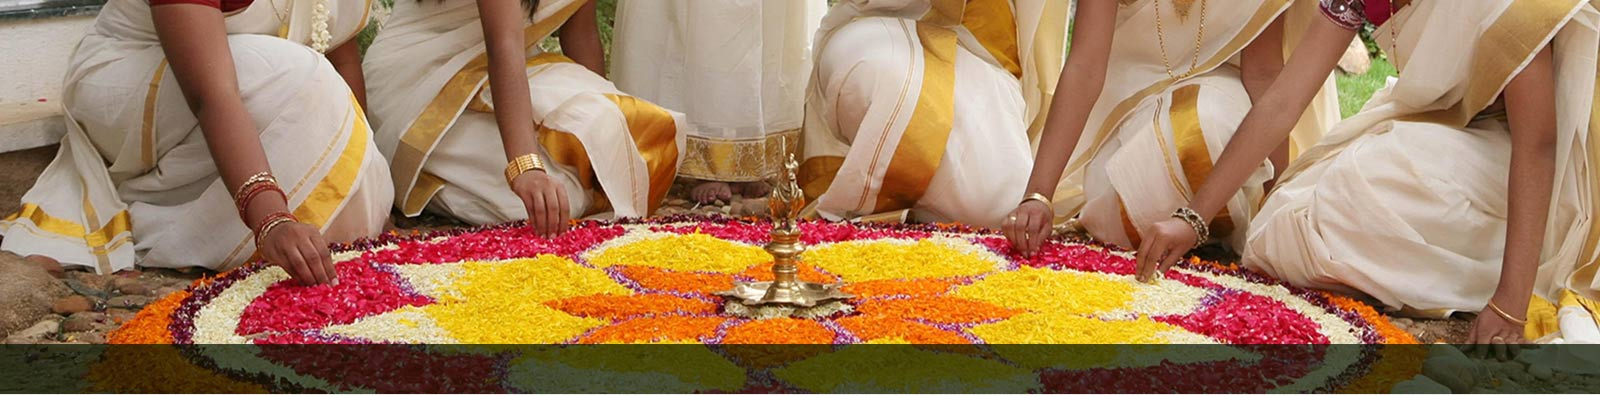 onam festival essay Diwali, festival of lights is the major festival in india for the hindus however, there are many others like lord ganesh chaturthi, dusshera, vijayadasami, holi, janmashtami, sri ram navami, onam and all.